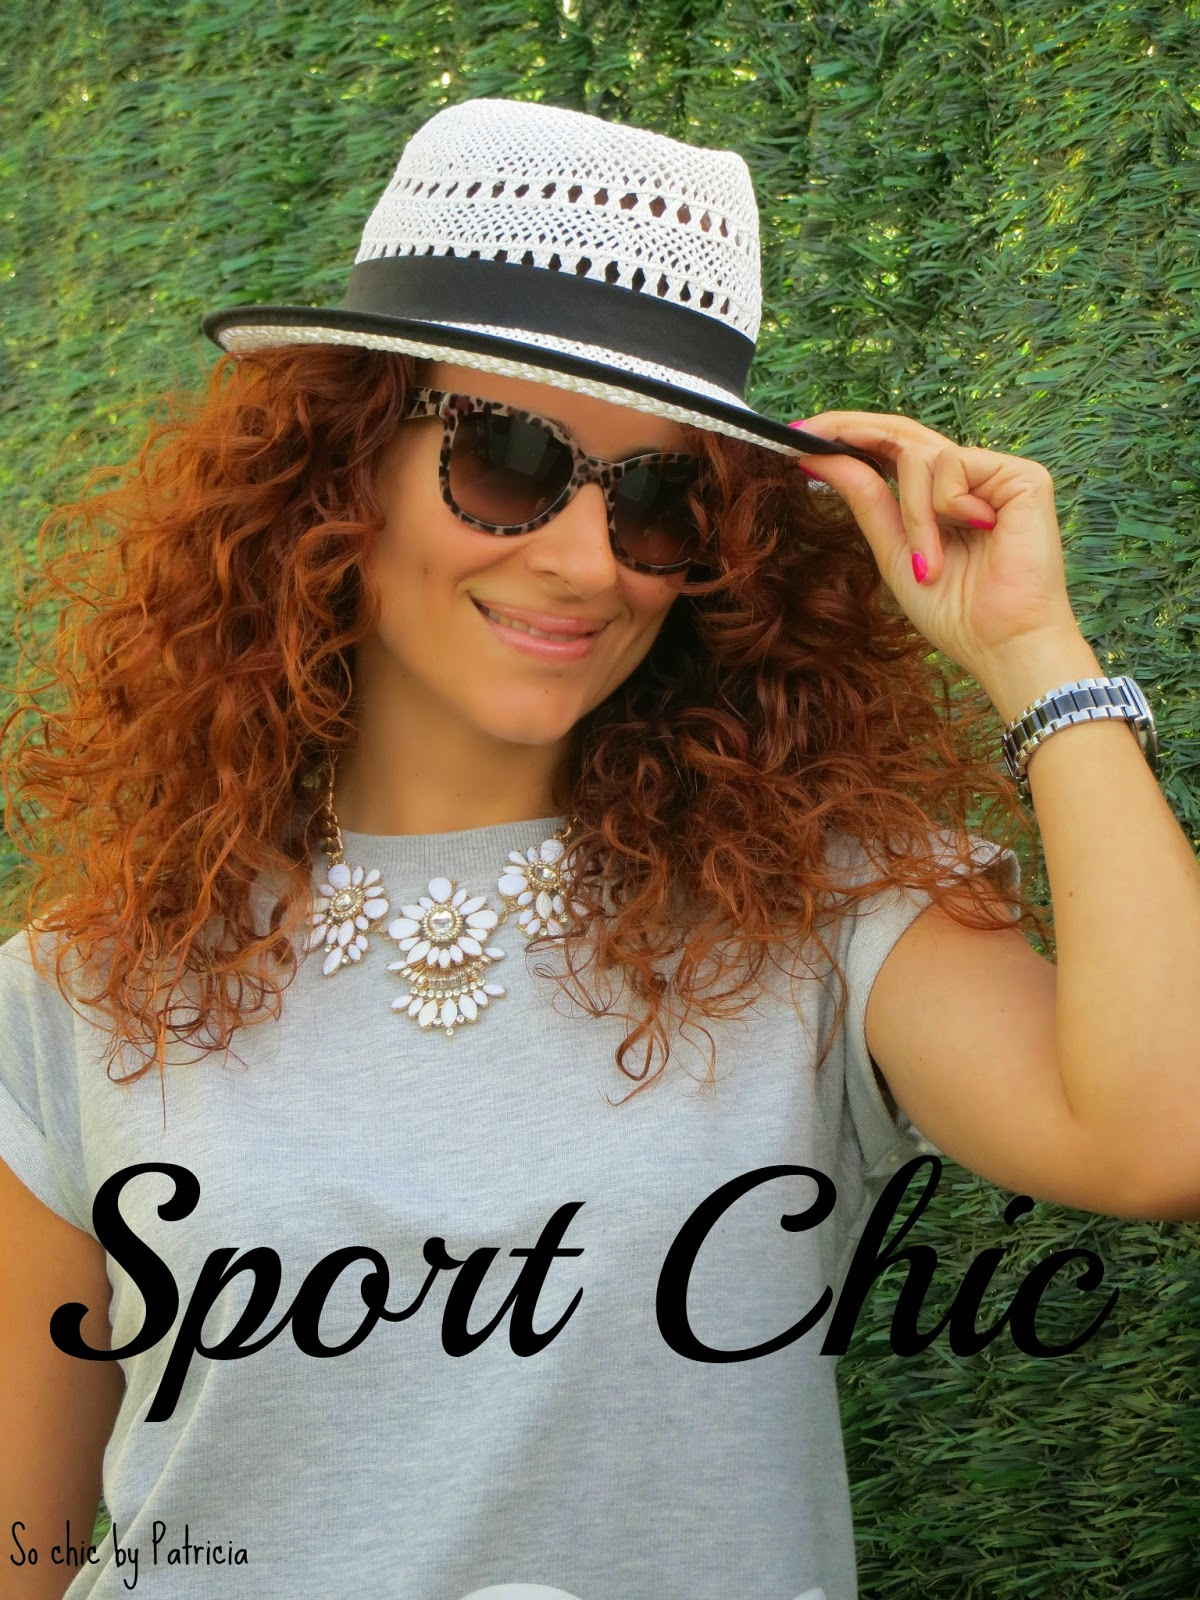 So chic by Patricia_Sport Chic.